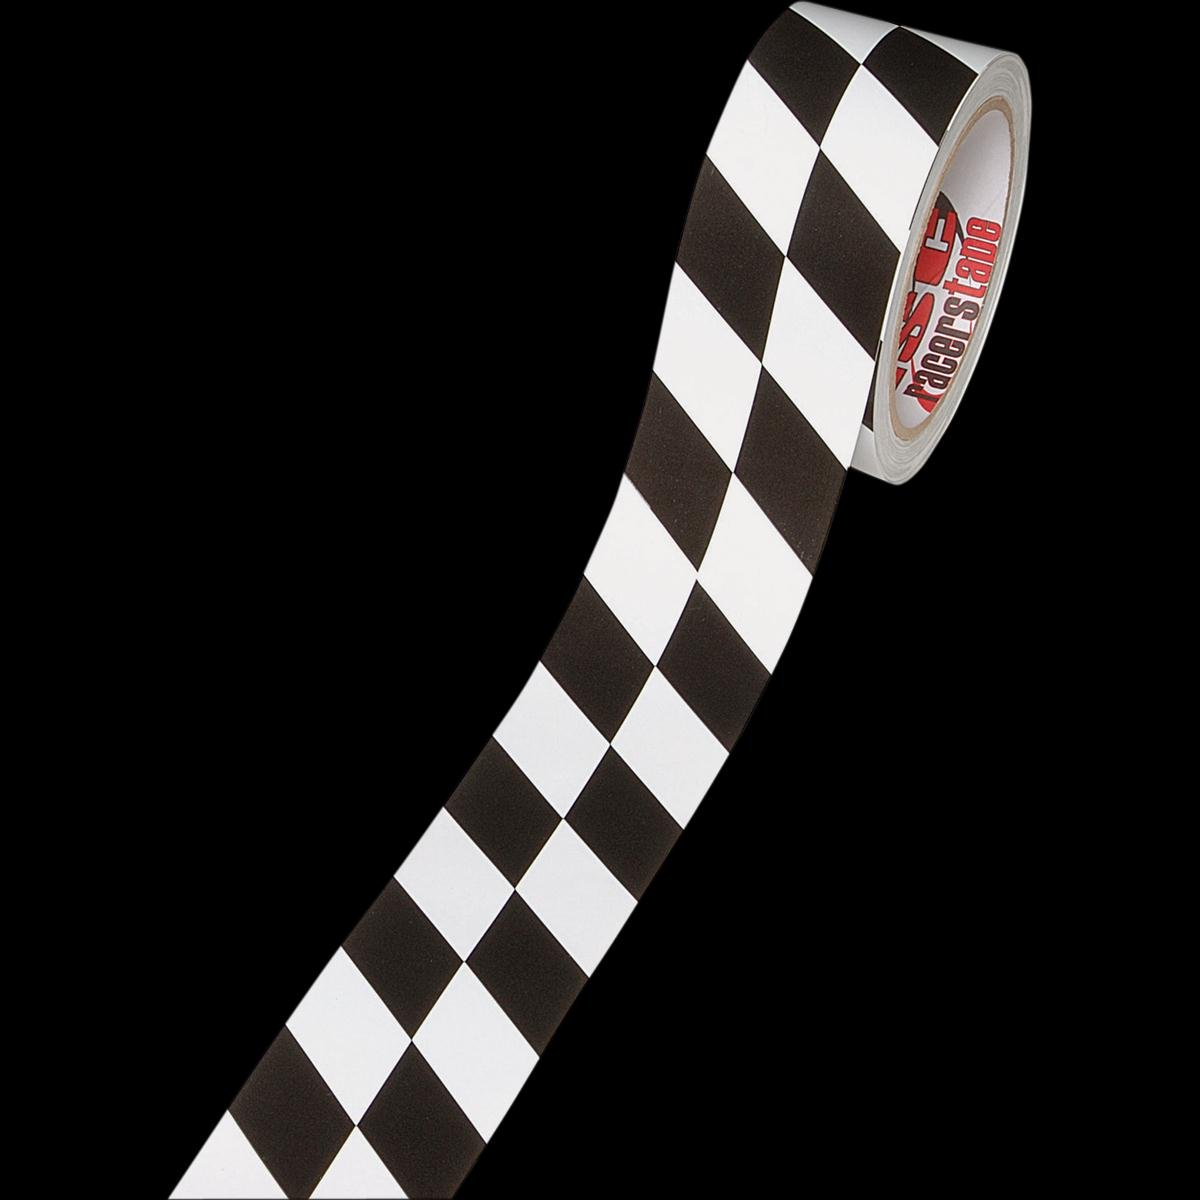 ISC Black /& White Checkerboard Tape Black//White Square pattern x 15 yds. 3 in